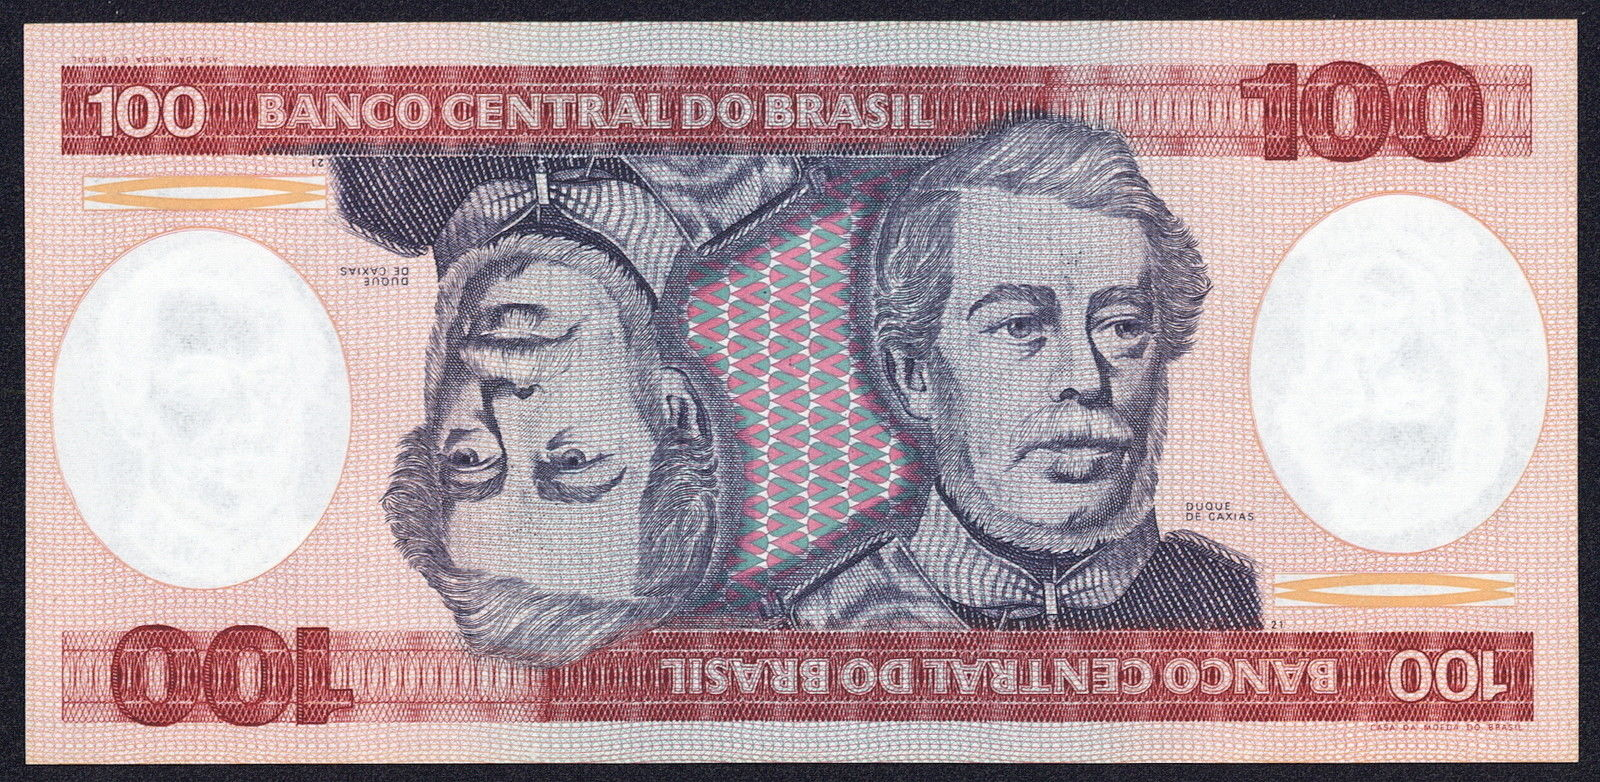 Brazil 100 Cruzeiros banknote 1983 Duke of Caxias World Banknotes & Coins Pictures   Old Money ...